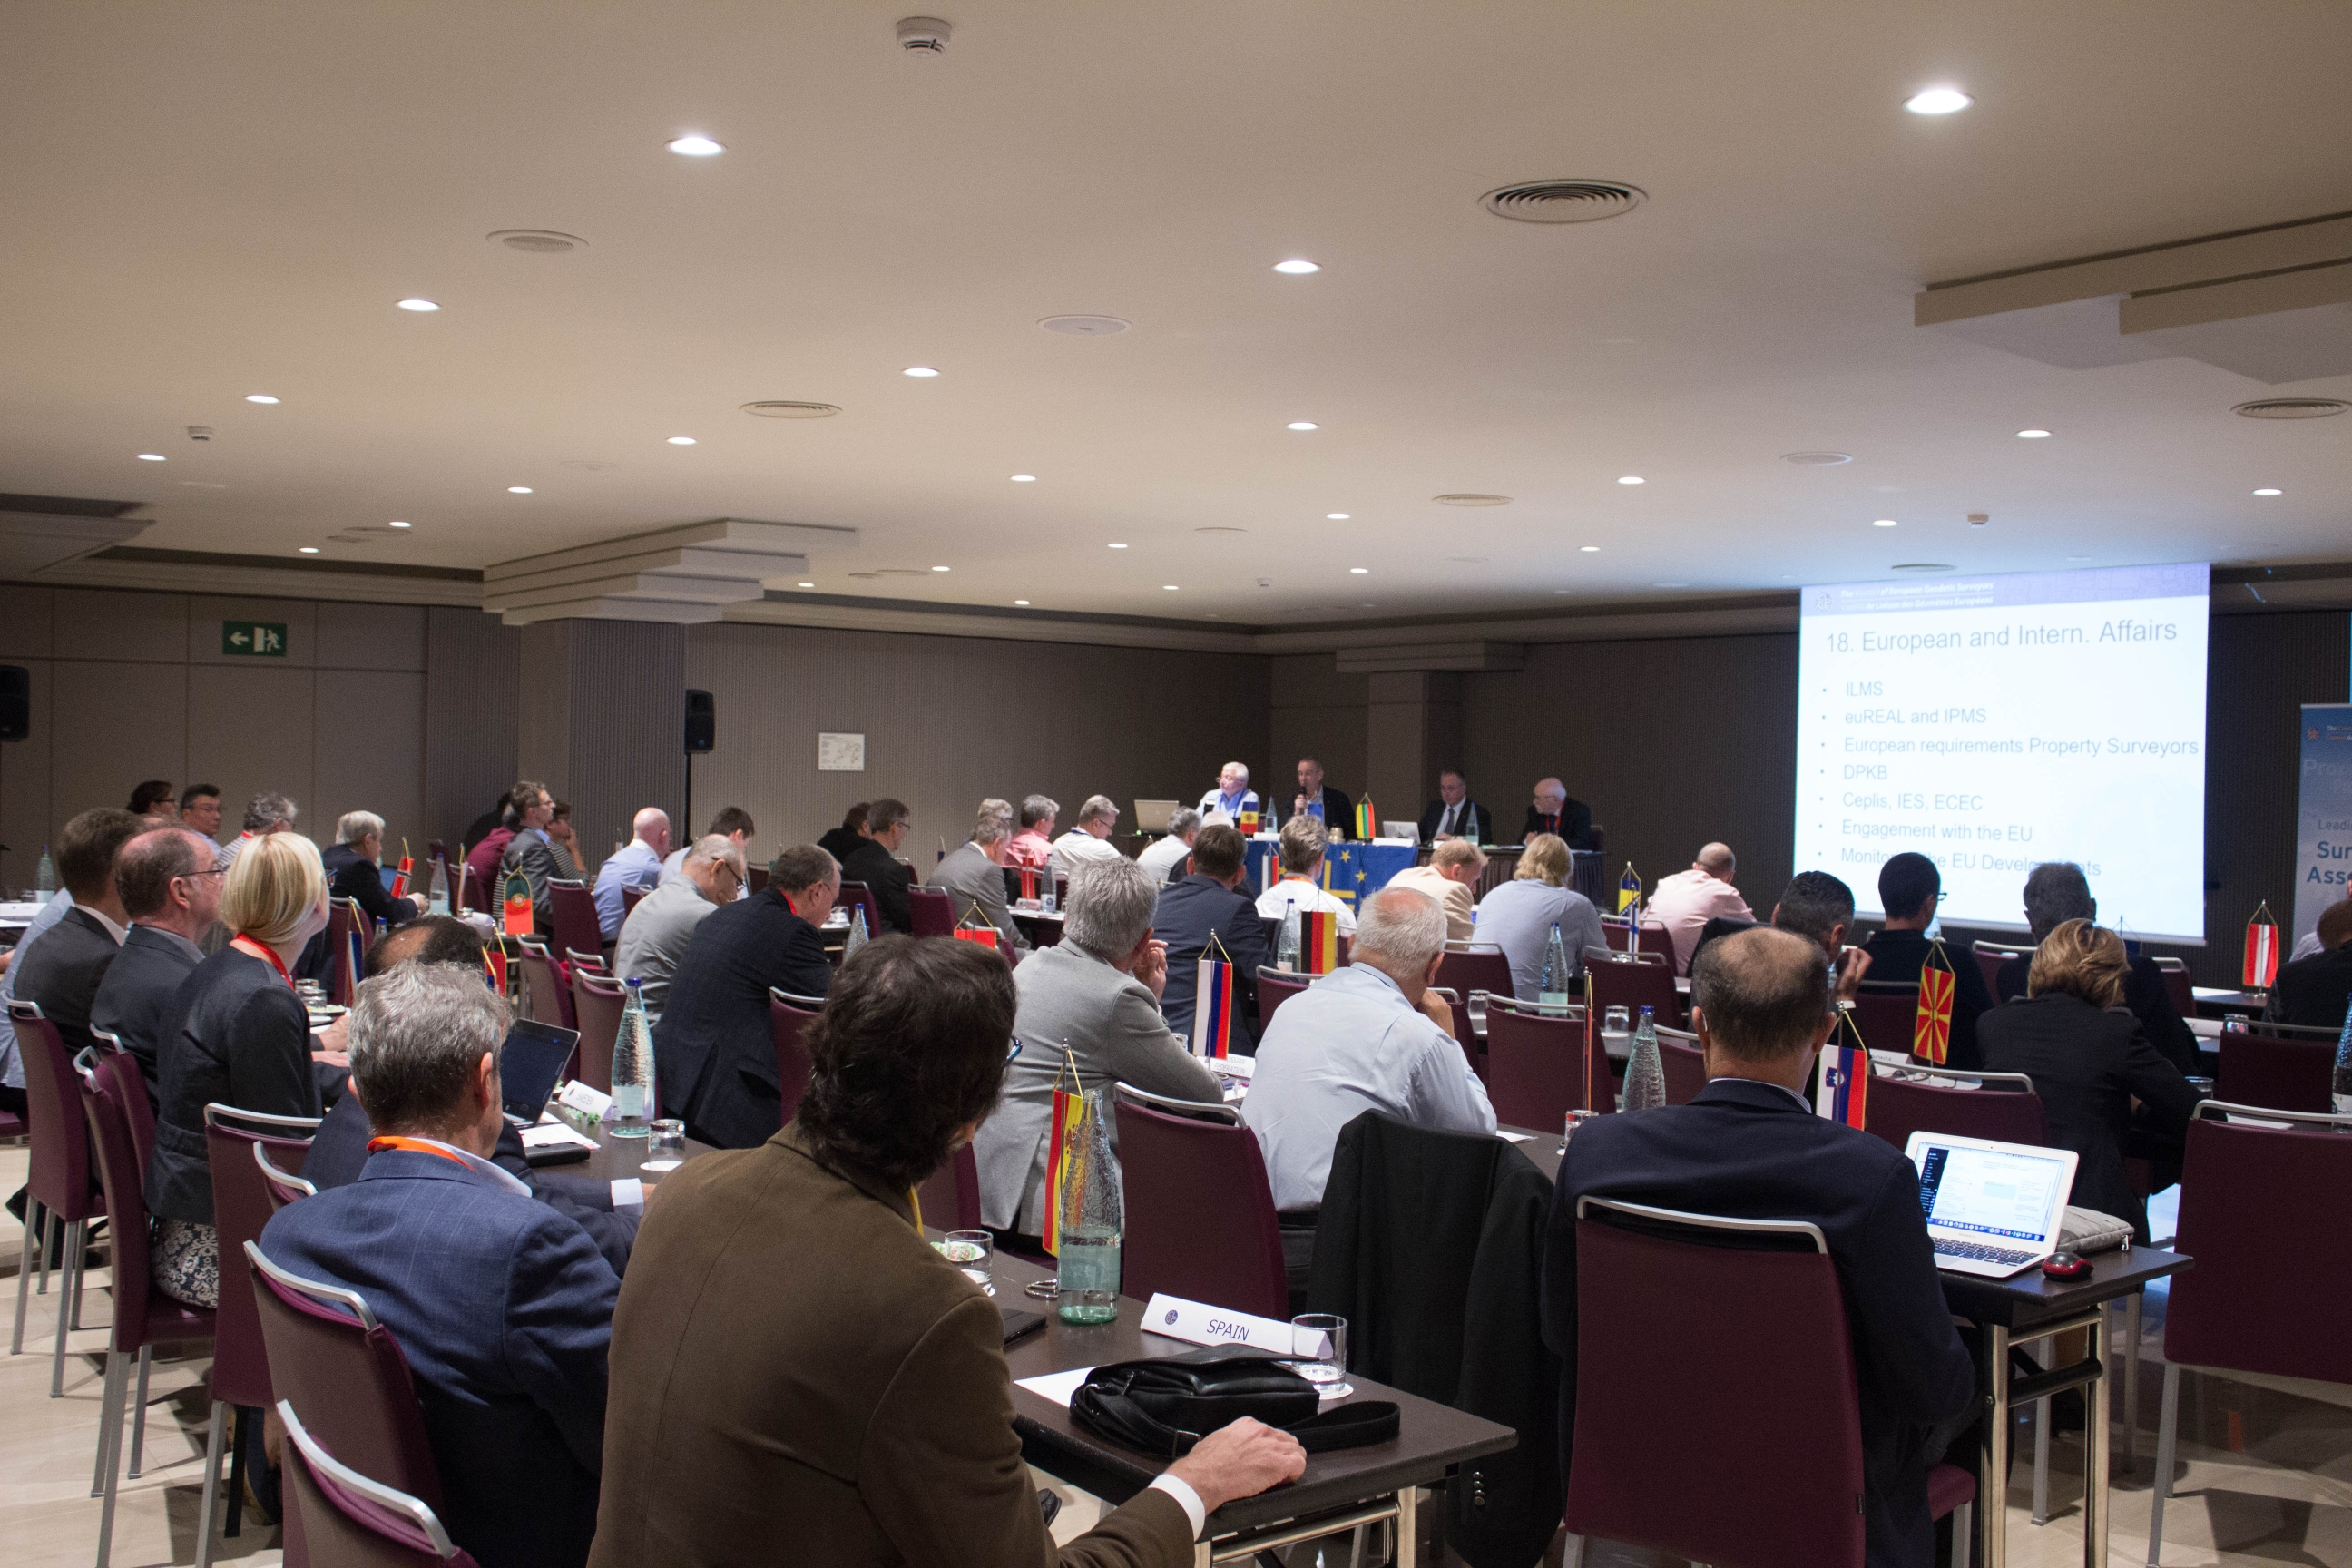 clge-general-assembly-barcelona-2018_43427408190_o.jpg